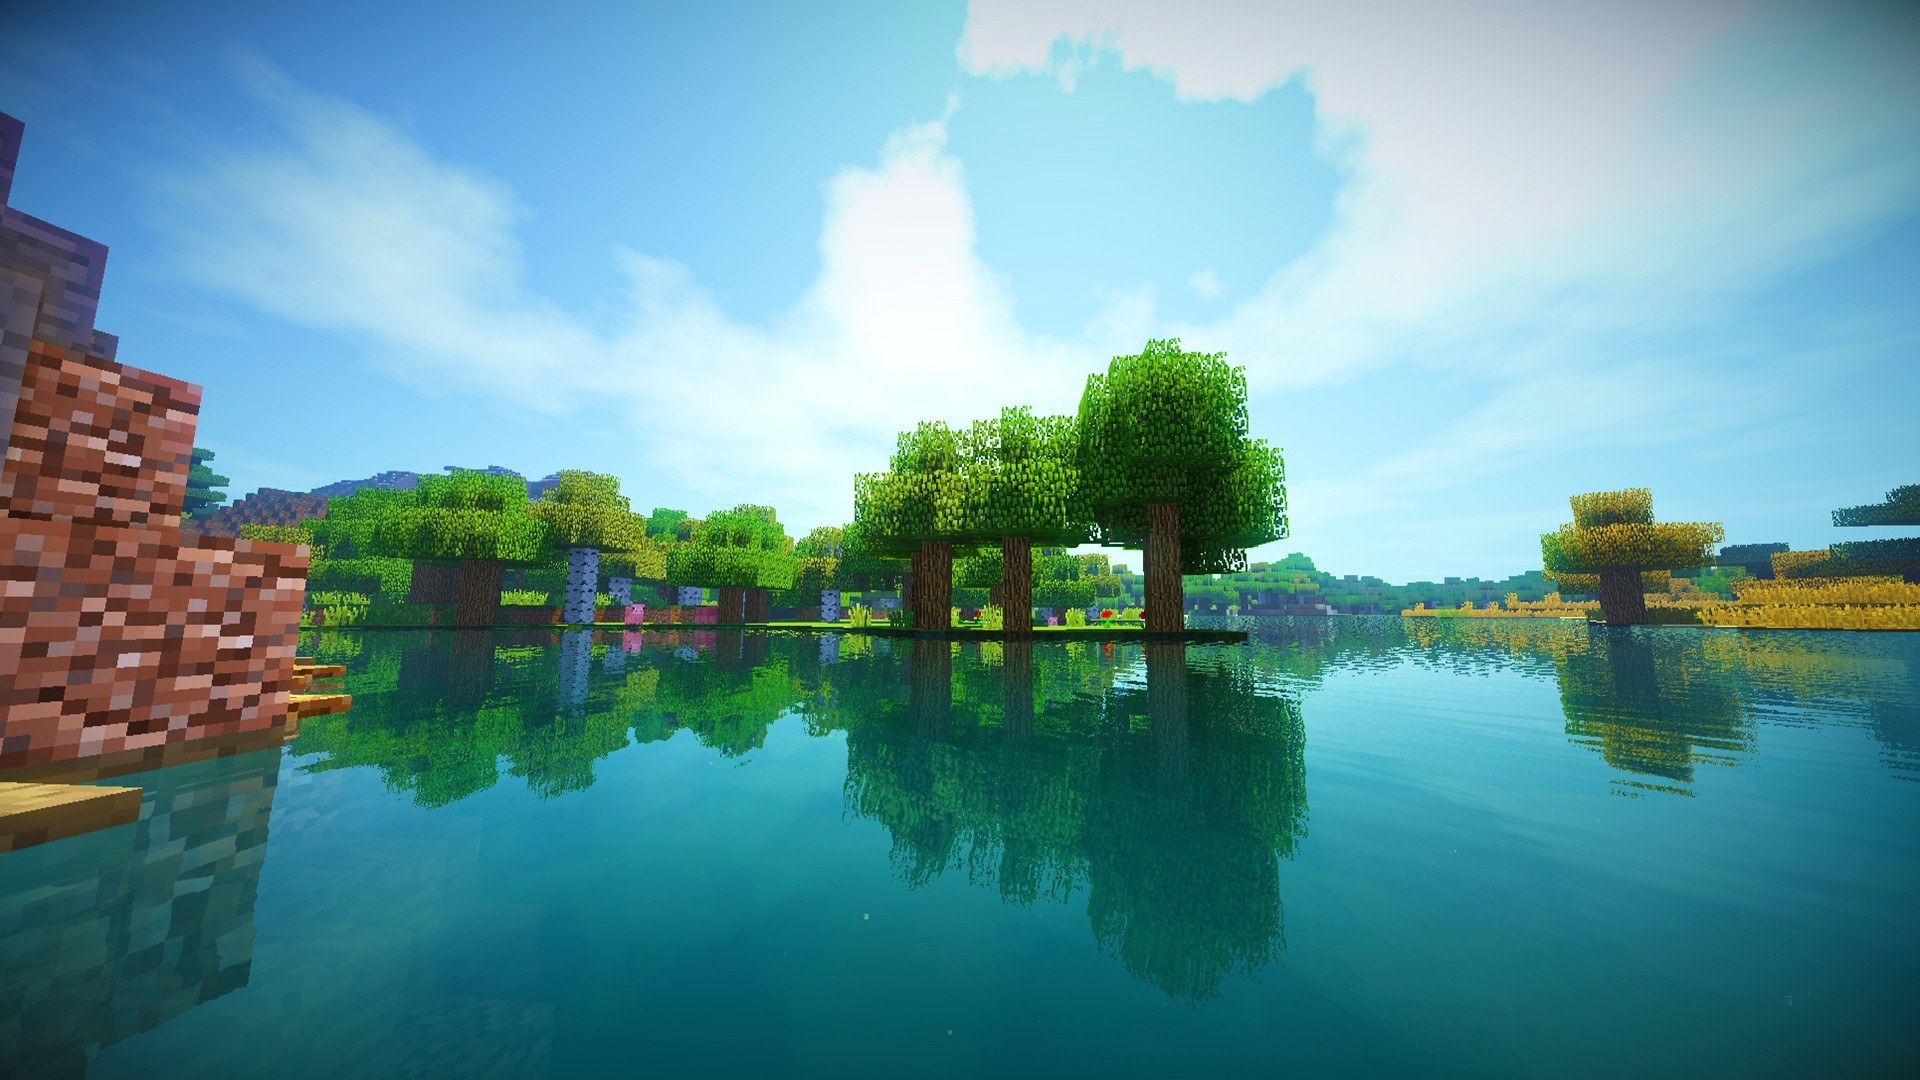 Free Download Minecraft Shaders Wallpapers Hd Desktop And Mobile